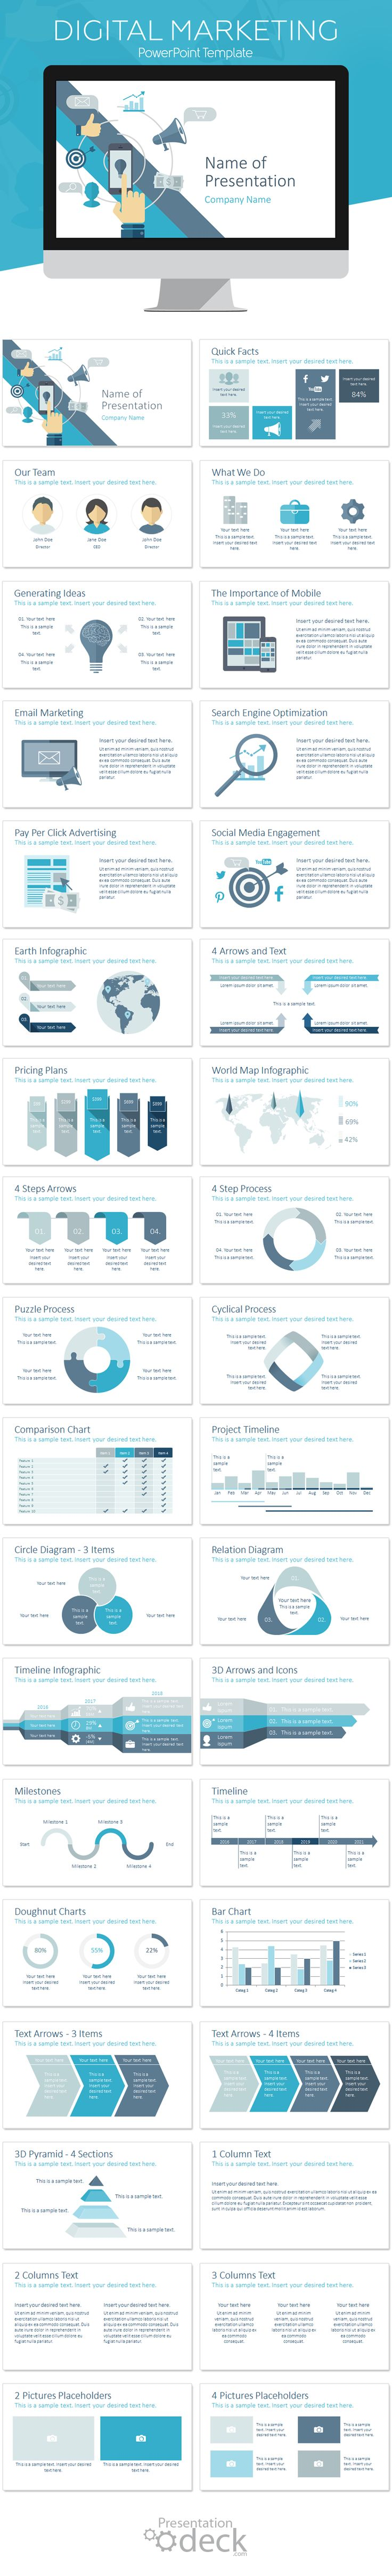 Digital marketing PowerPoint template in flat design style including 36 pre-designed slides. This theme is perfect for…